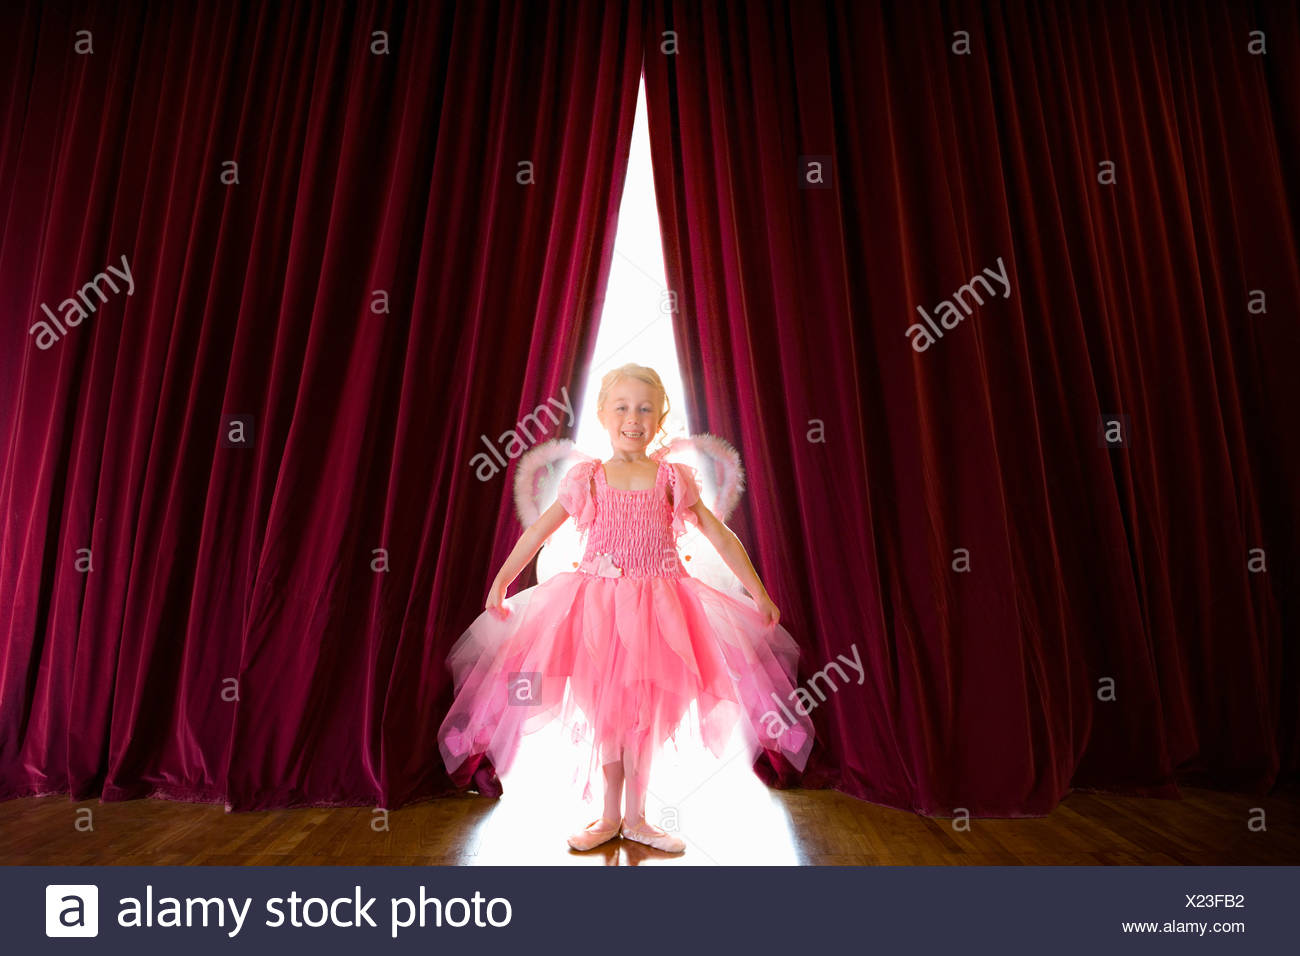 Ballerina posing on stage - Stock Image